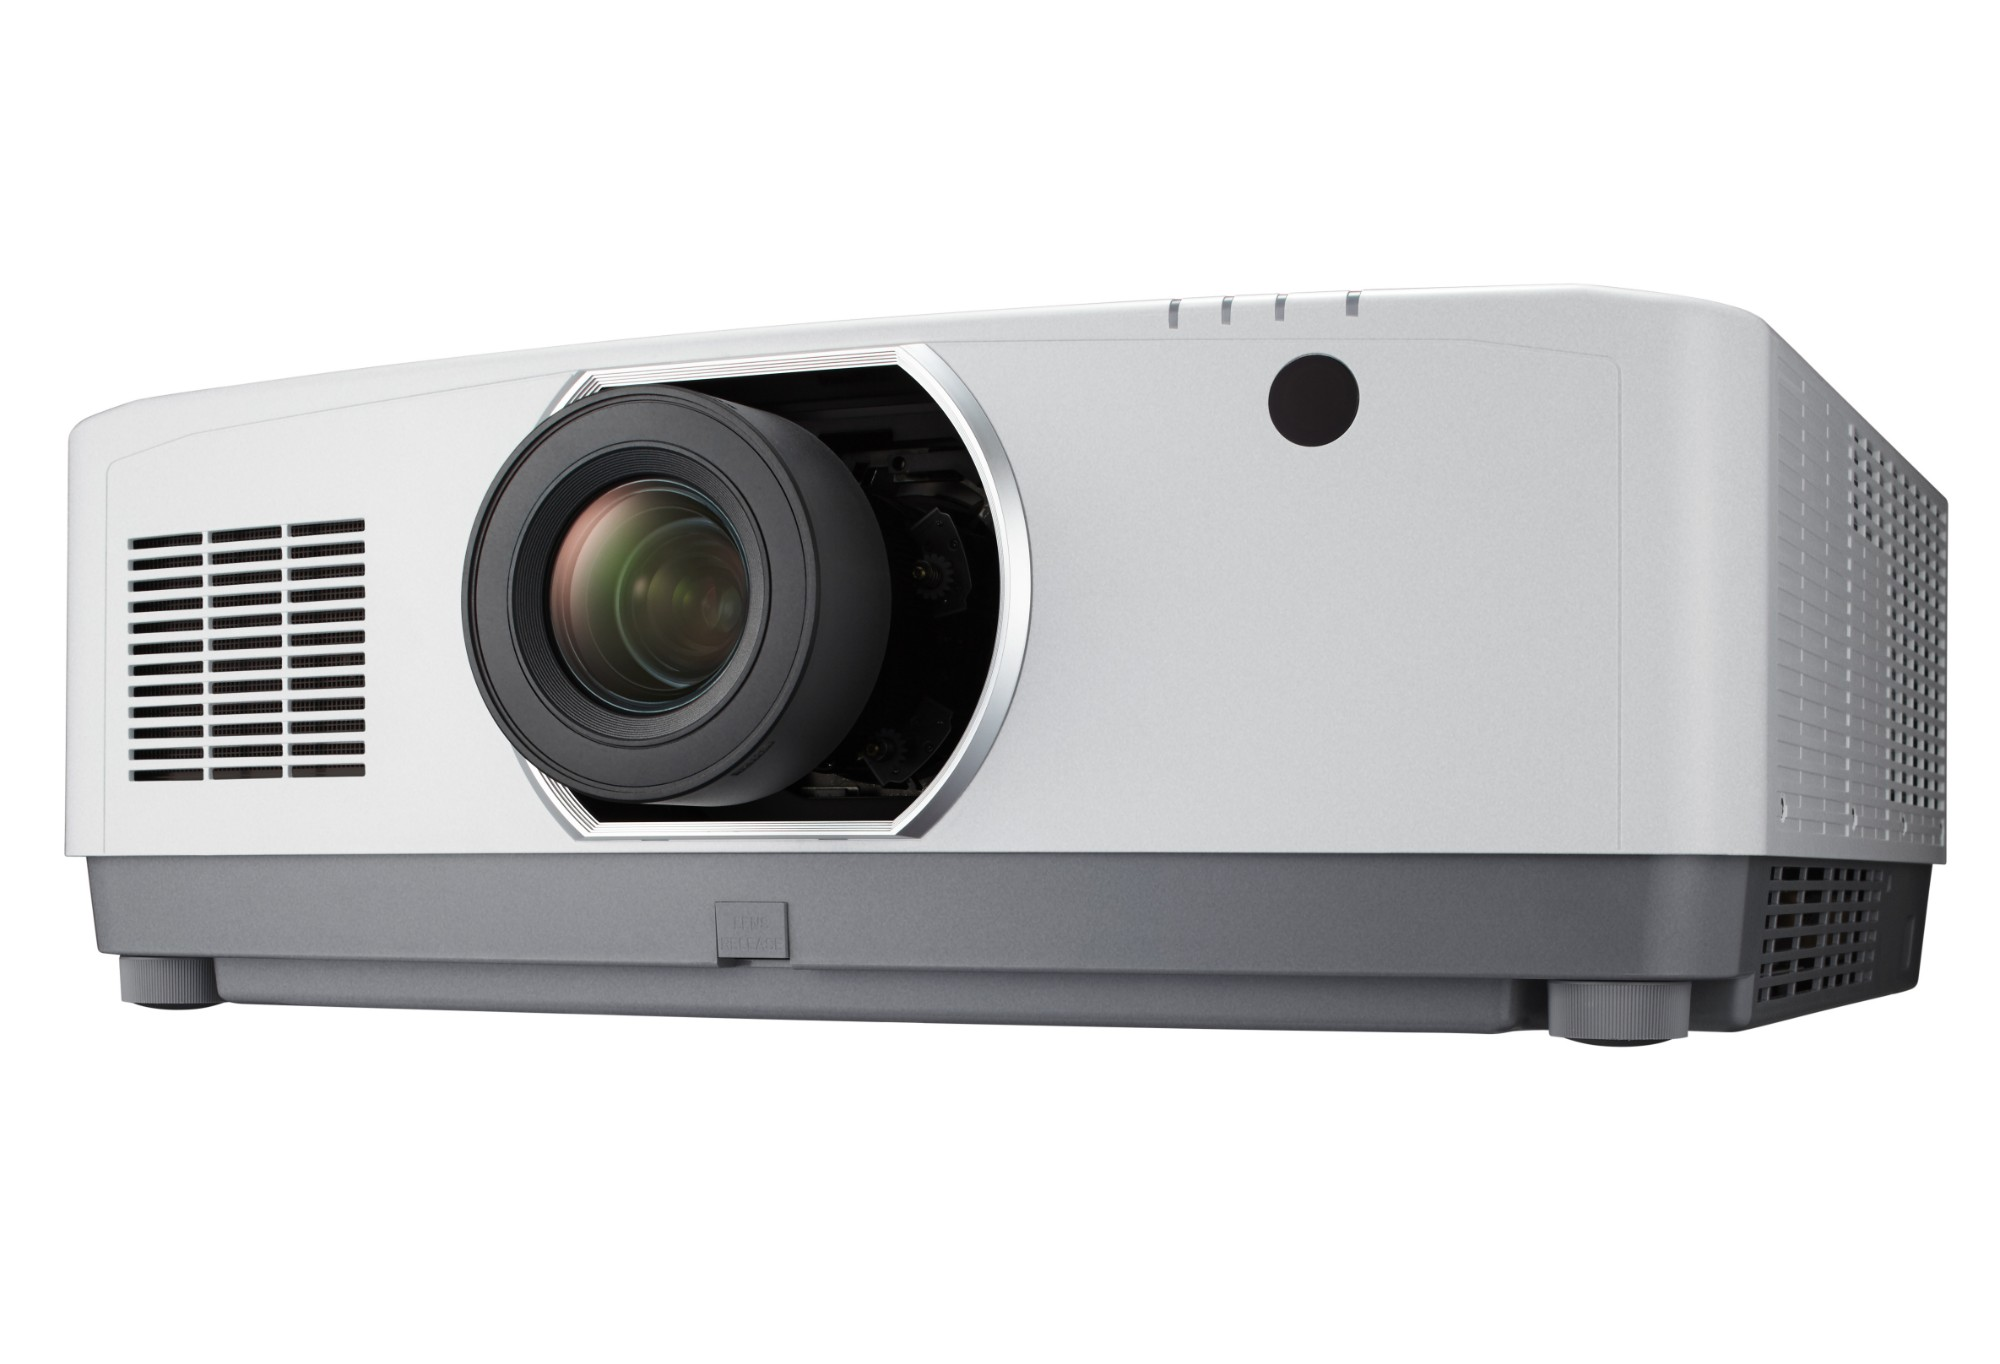 NEC PA653UL Desktop projector 6500ANSI lumens 3LCD WUXGA (1920x1200) 3D White data projector